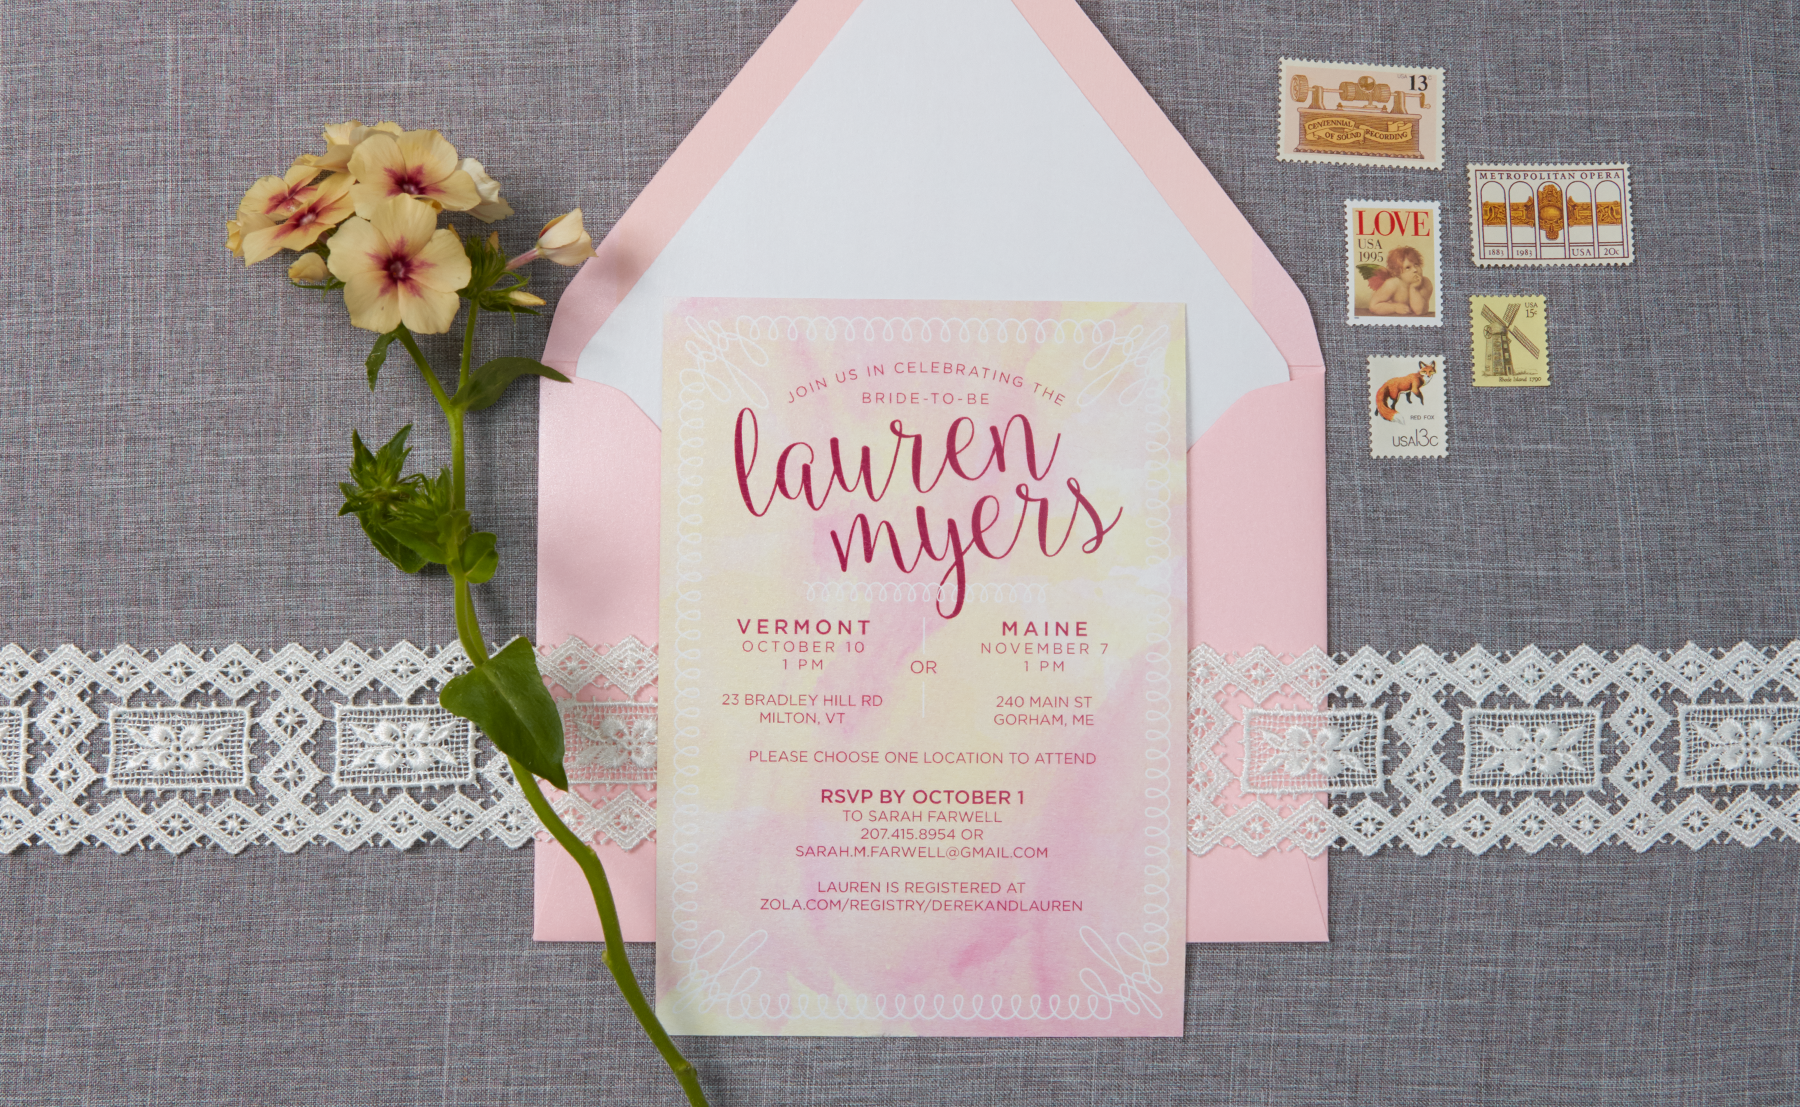 Lauren-Wedding-Shower-Invitation.png